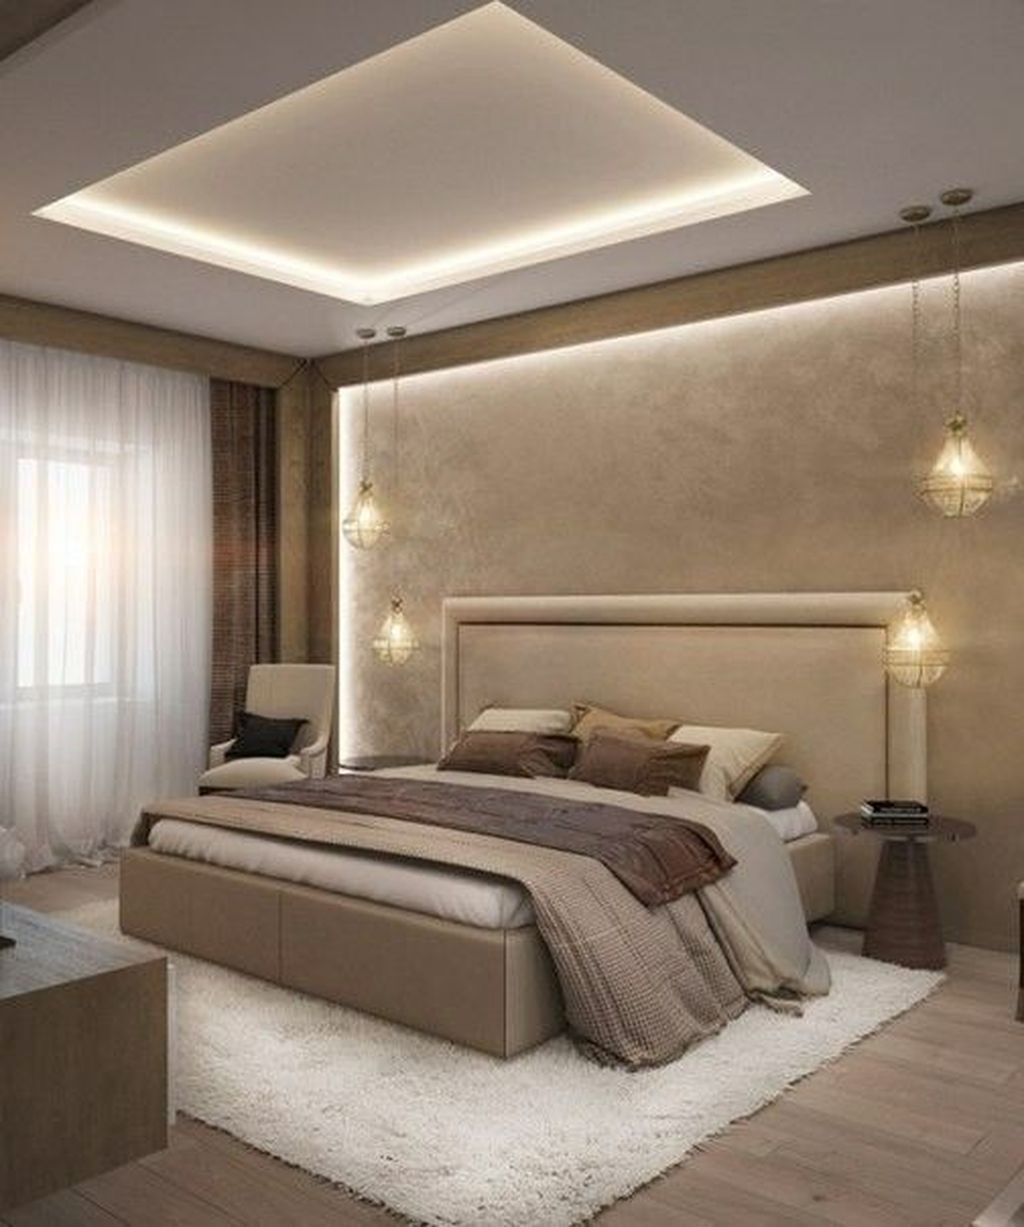 Stylish Bedroom Design Ideas For You To Apply In Your Home19